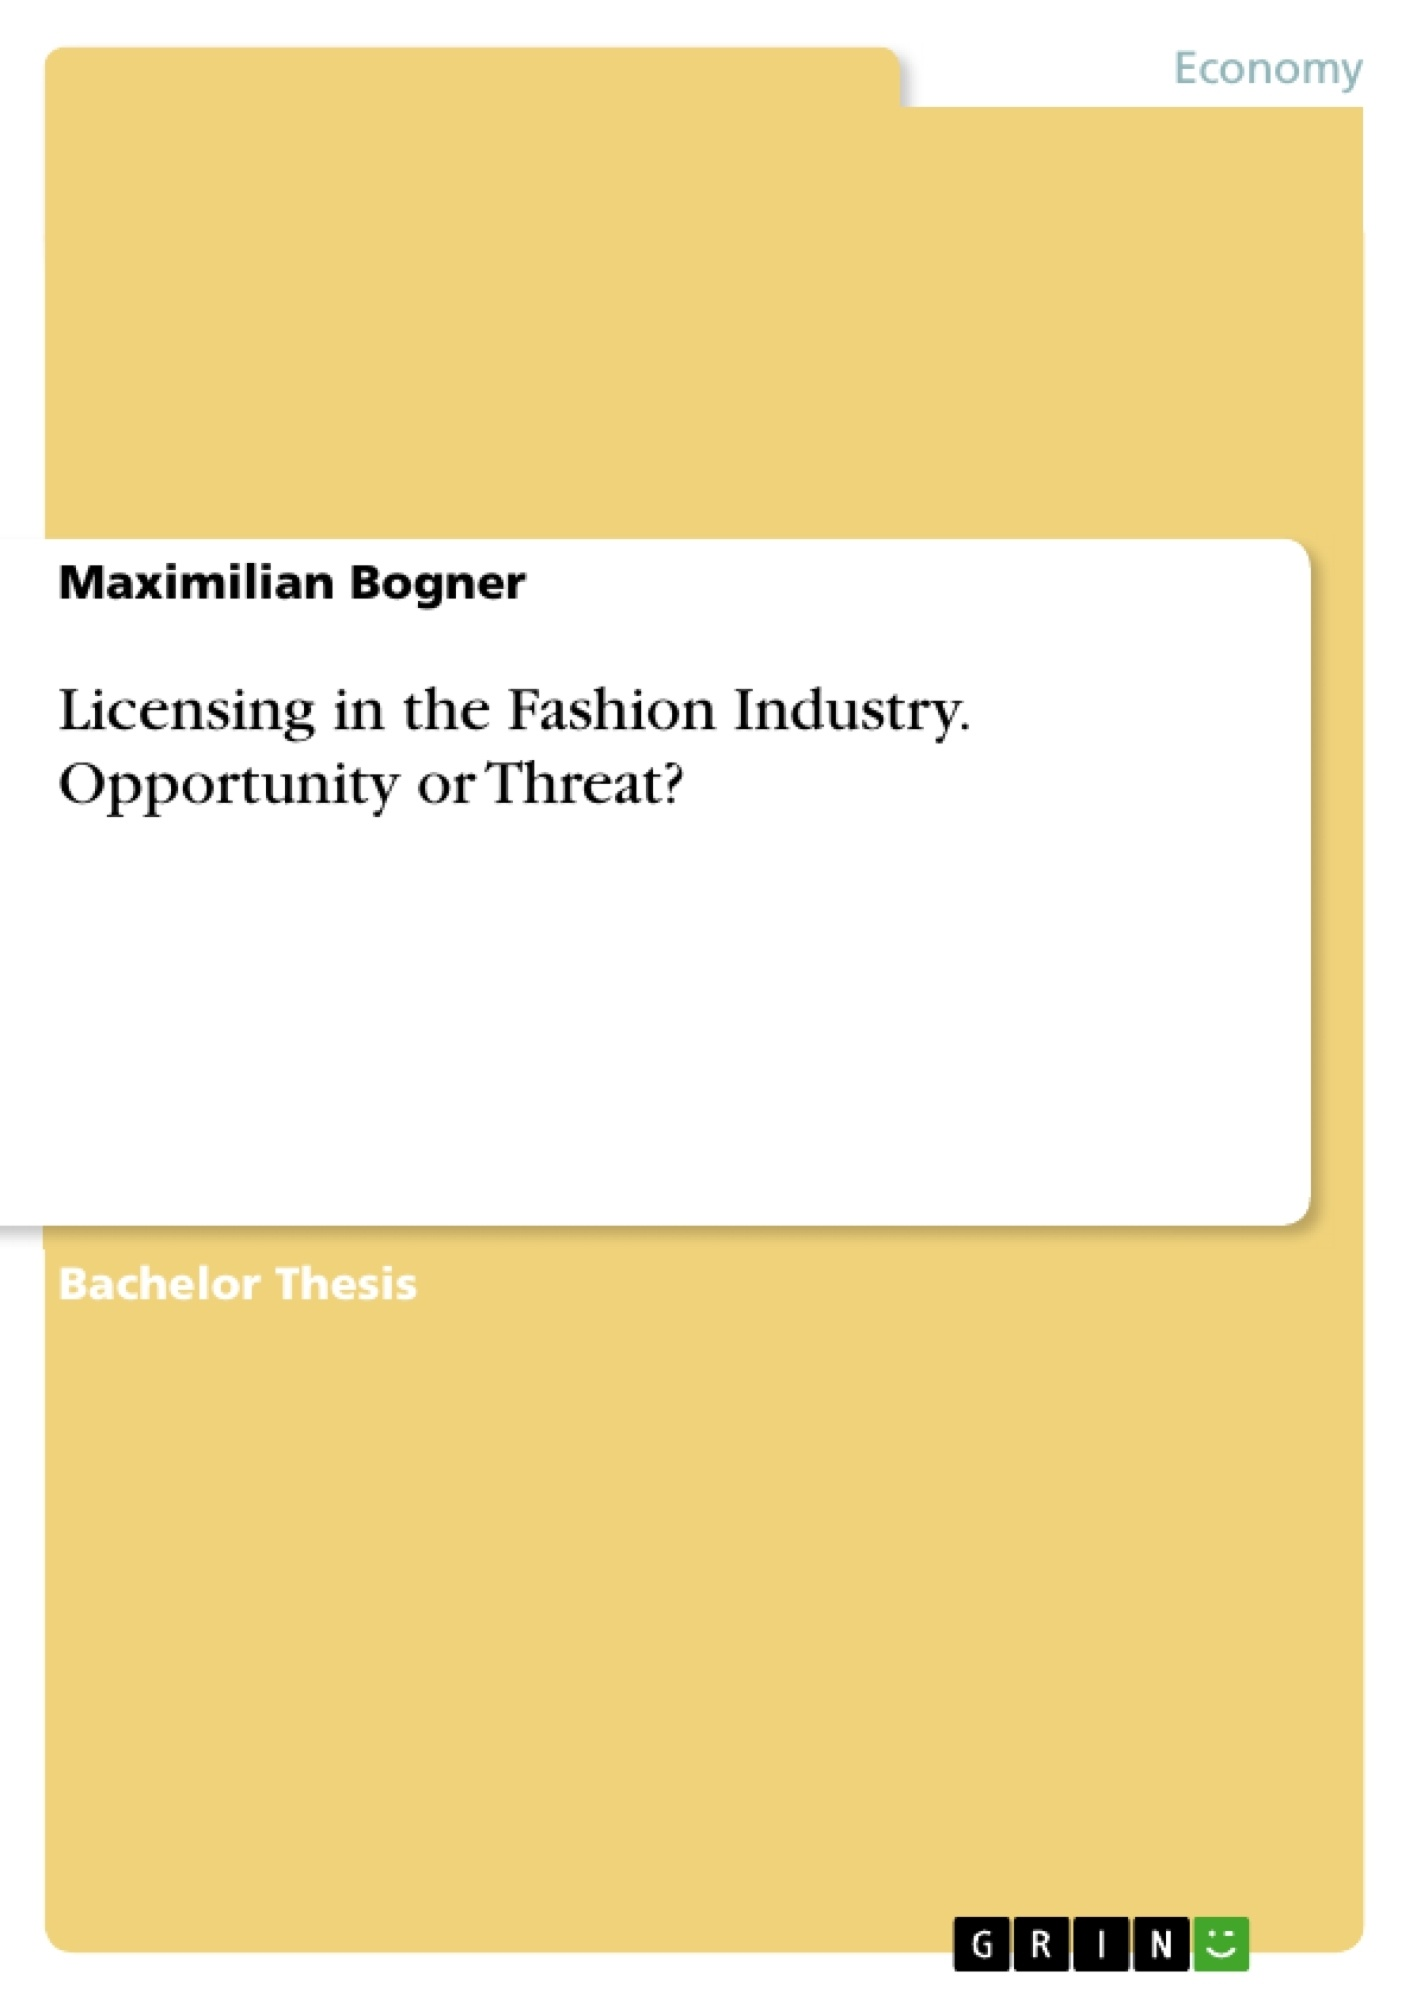 Title: Licensing in the Fashion Industry. Opportunity or Threat?